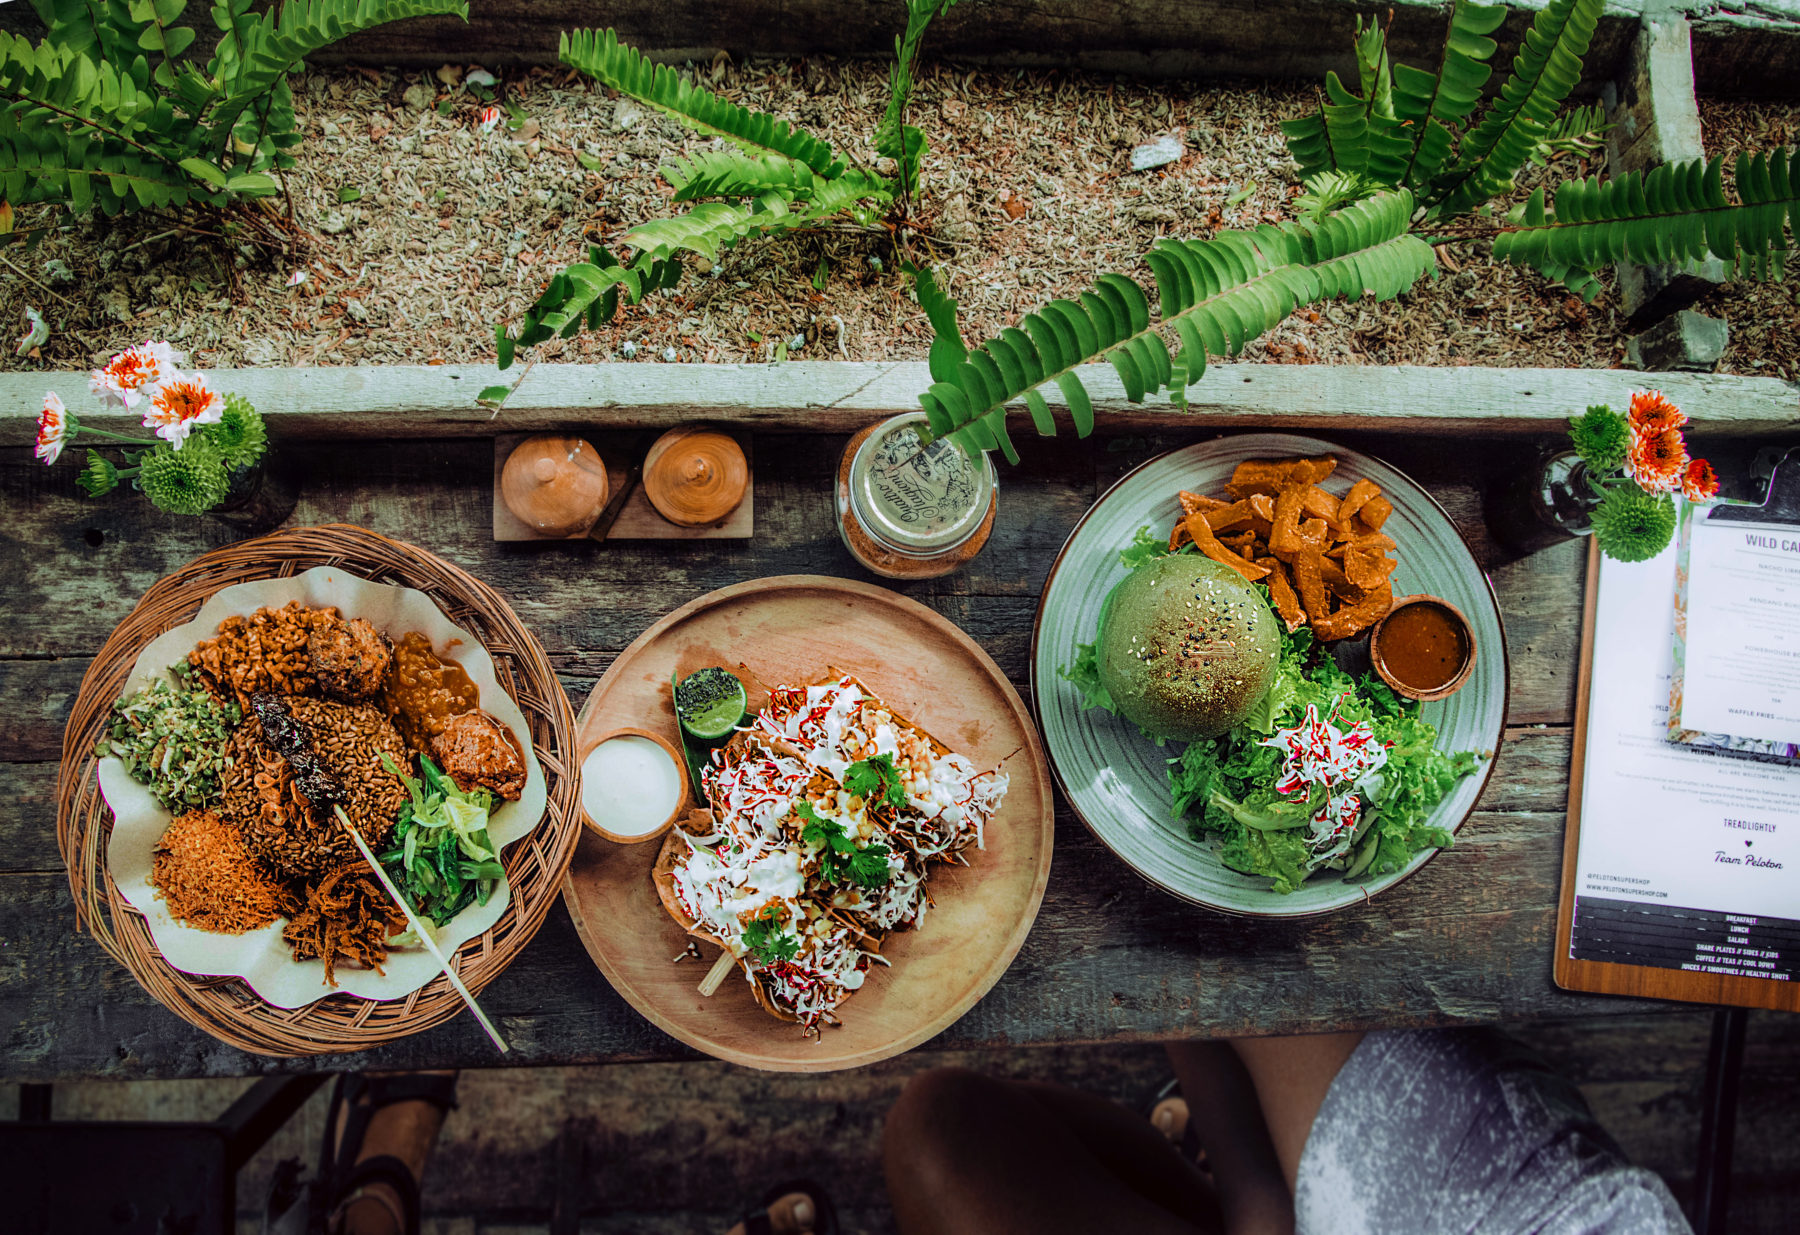 bali vegan food healthy cruelty free eating best place lunch